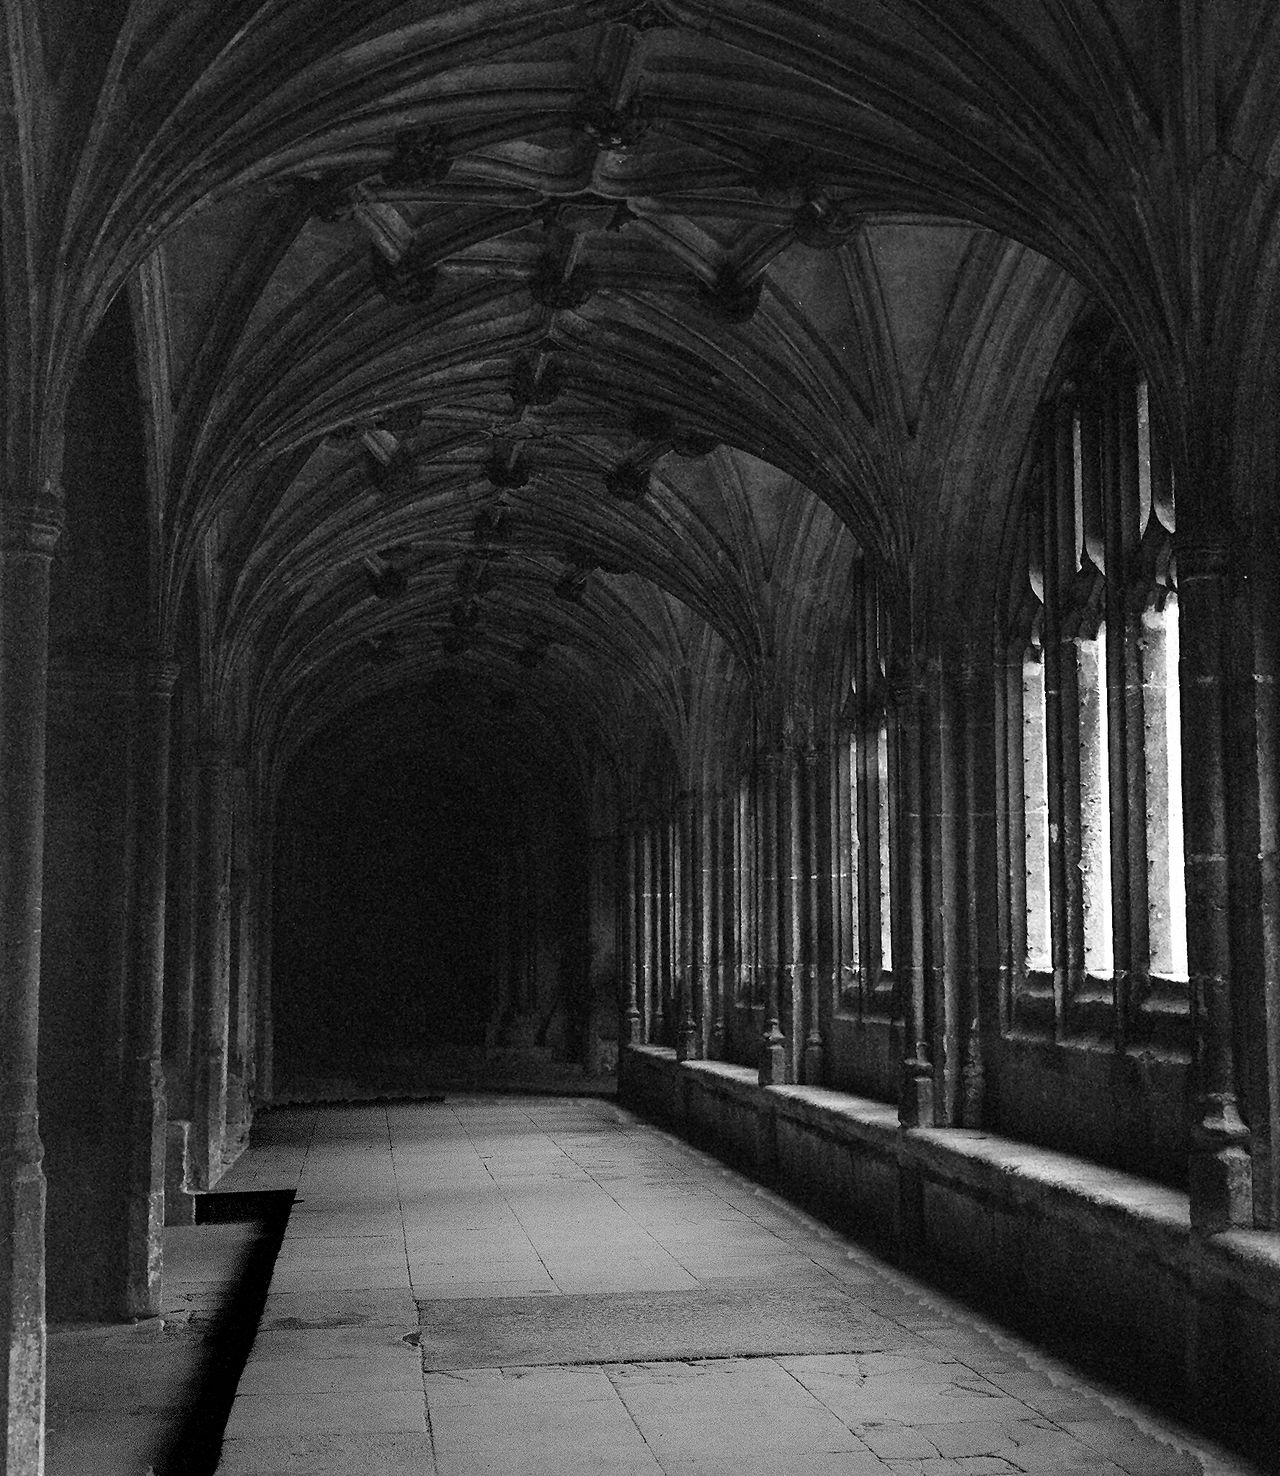 Architectural Column Architecture Cloister Colonnade Corridor Diminishing Perspective England, UK Historic